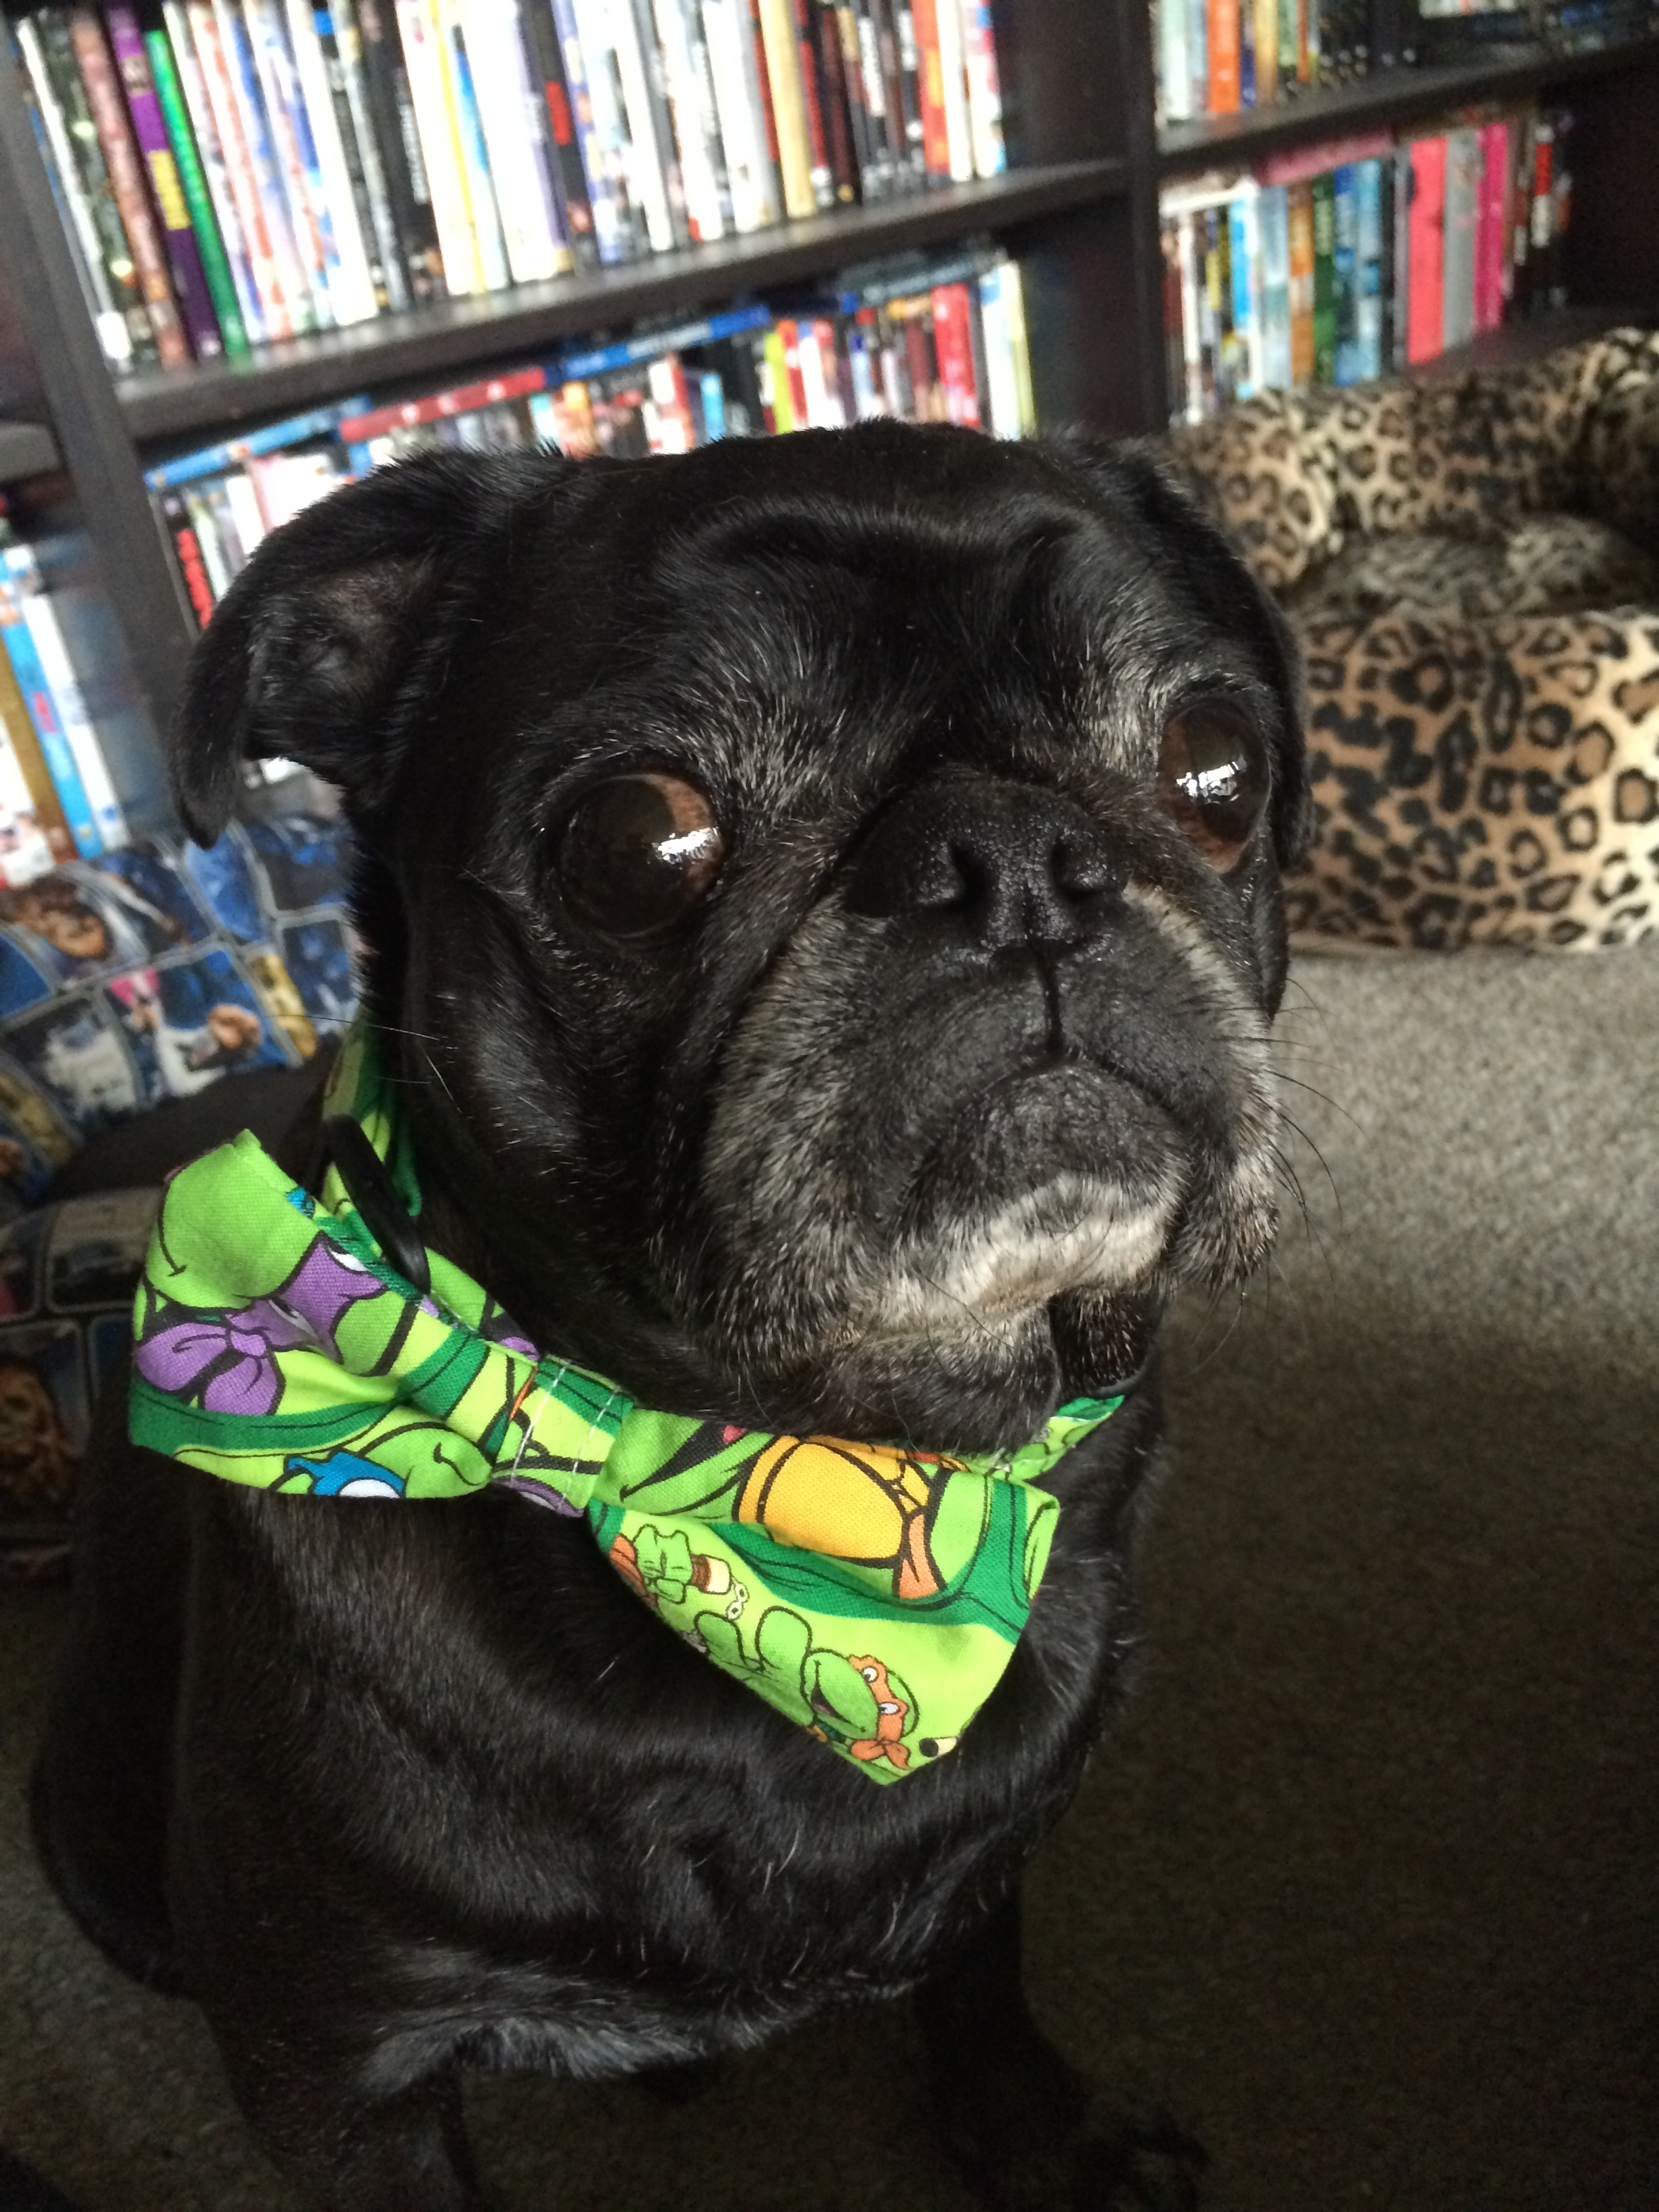 TMNT bowtie, a must for every geeky dog!